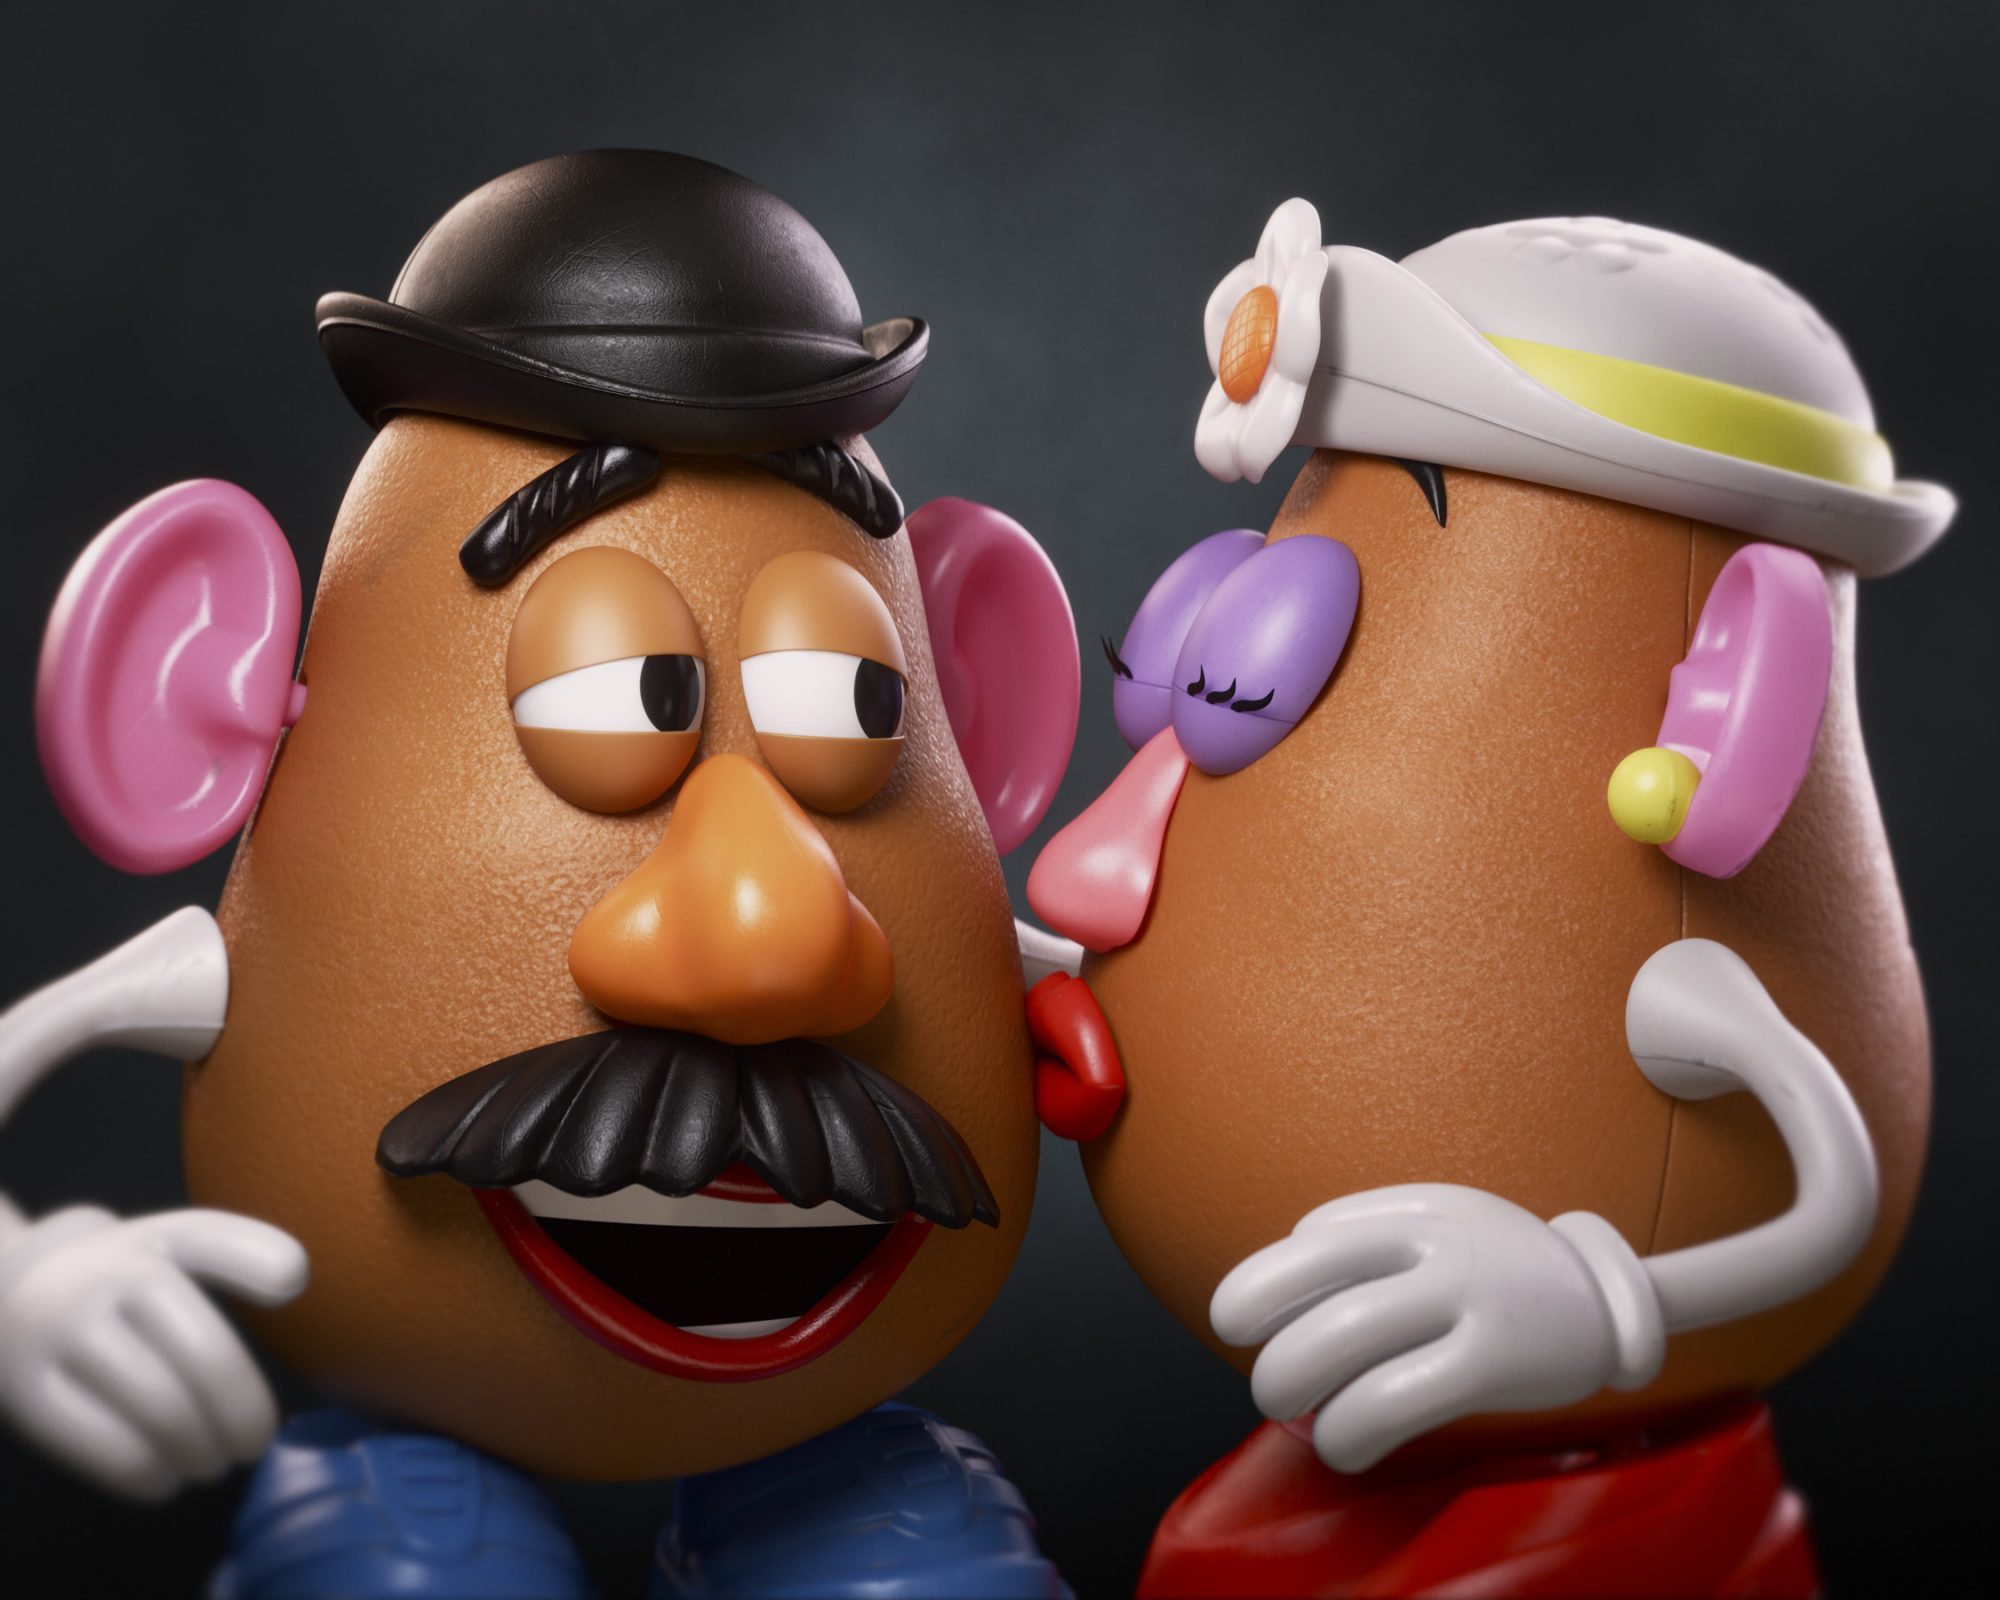 Toy Story 4 Mr. Potato Head and Mrs. Potato Head CR: Disney/Pixar